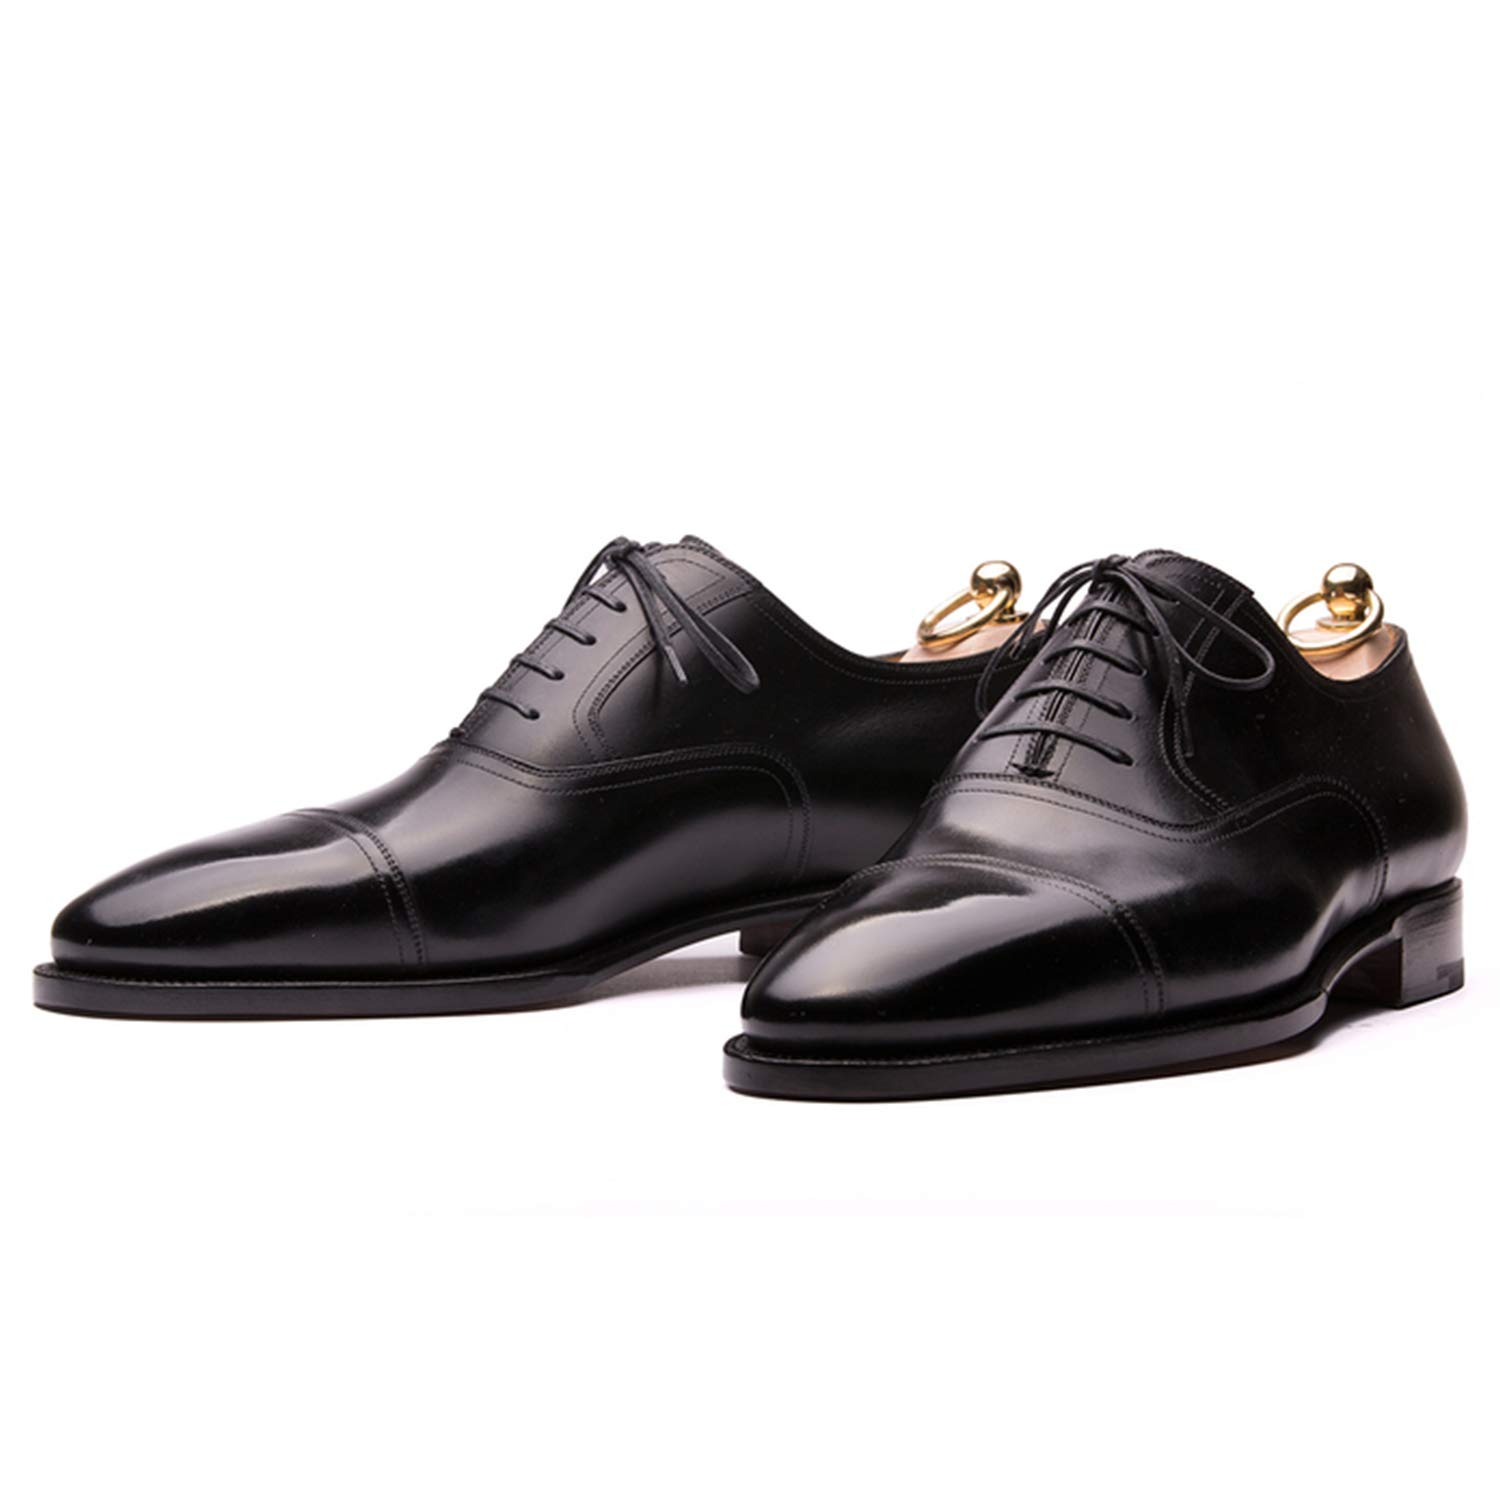 Classic Genuine Leather Formal Oxford